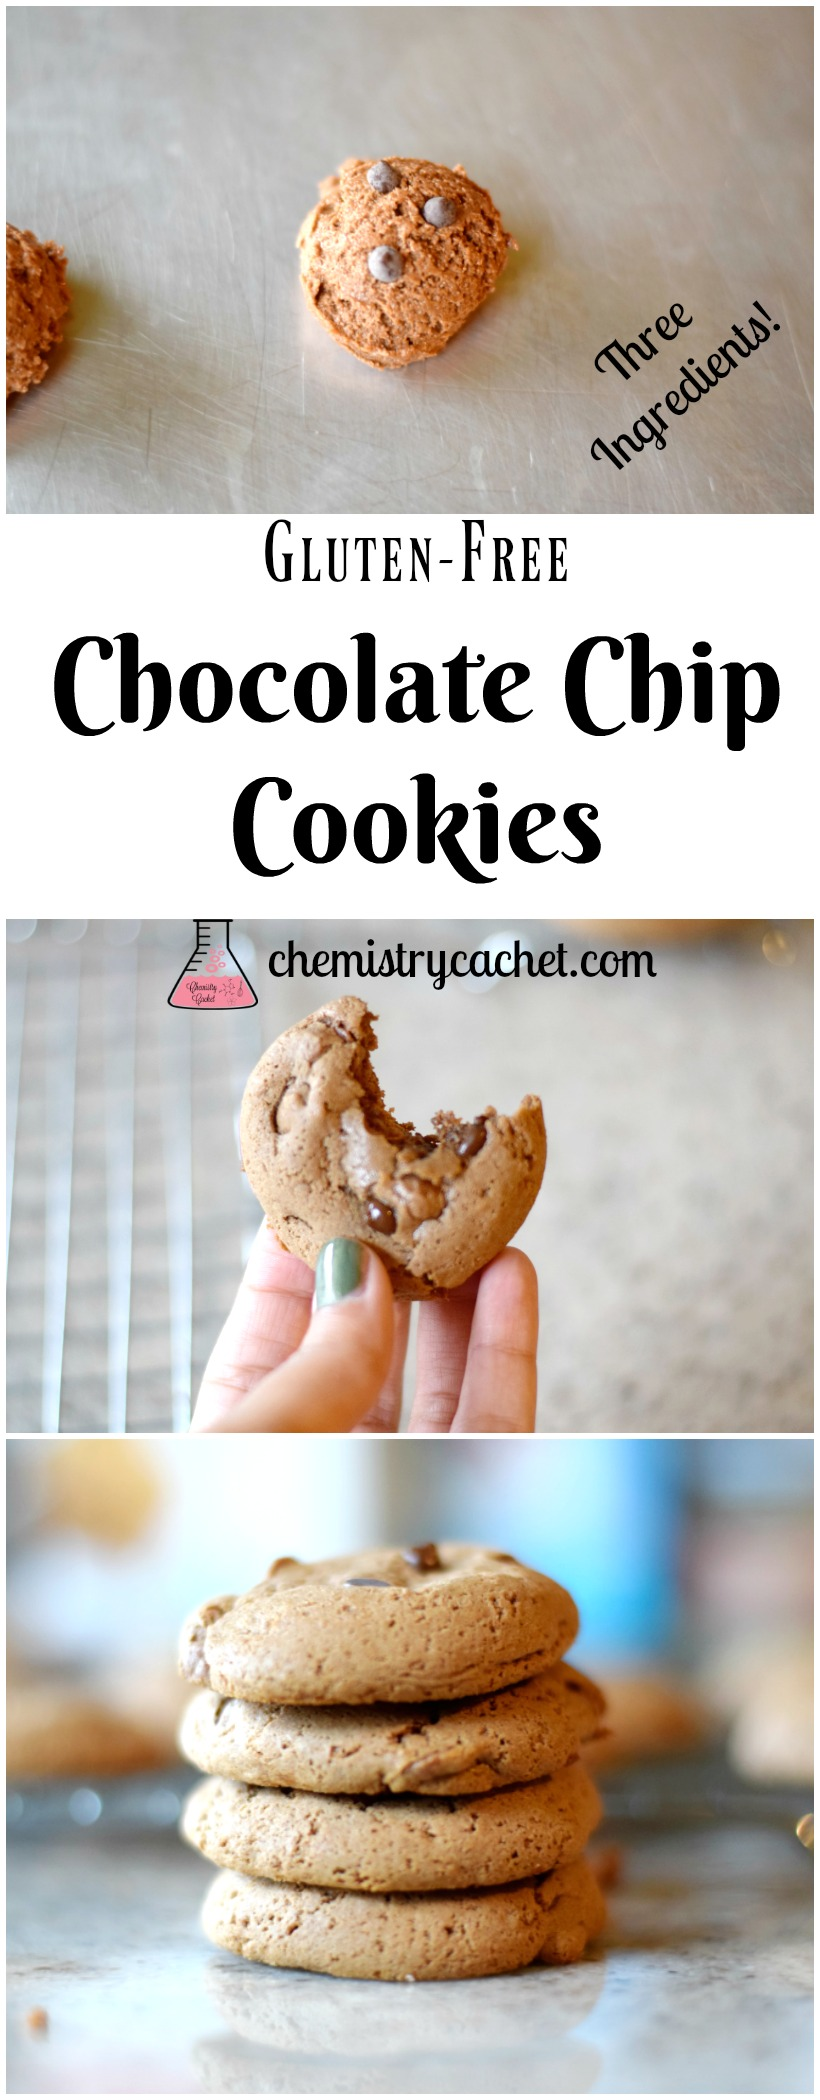 The Easiest Gluten-Free Chocolate Chip Cookies (Only 3 Ingredients!). Easy Gluten-Free Chocolate Chip Cookie Recipe on chemistrycachet.com